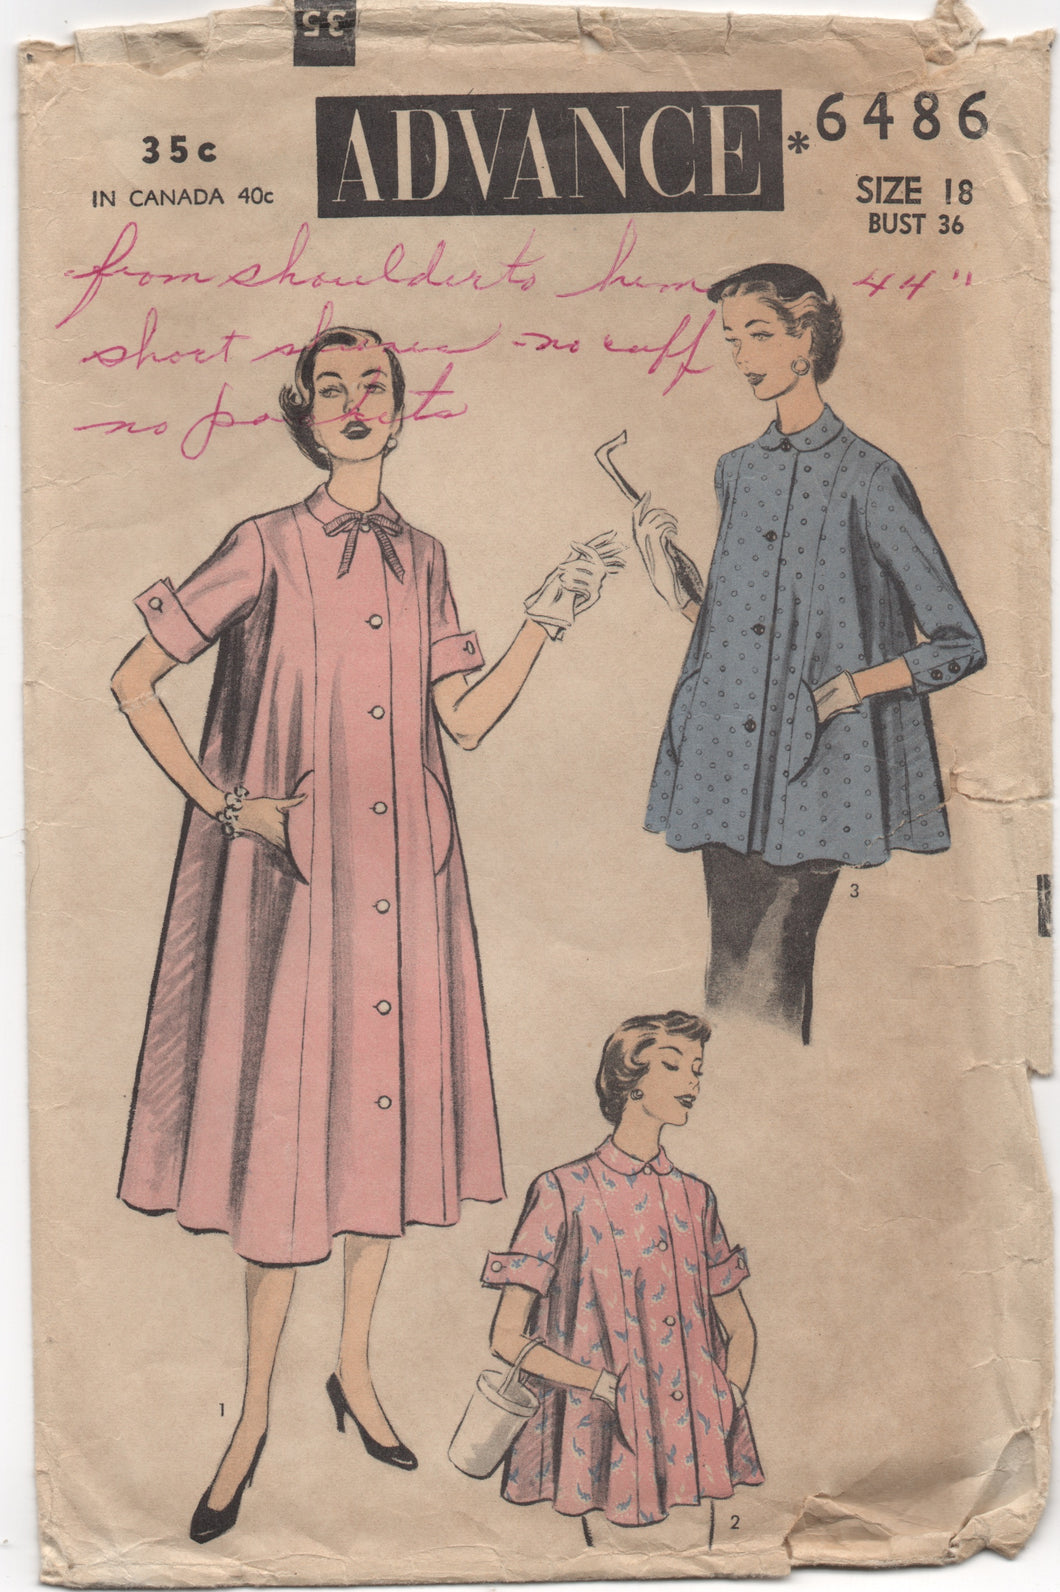 1950's Advance Maternity Dress or Smock with Pockets - Bust 36